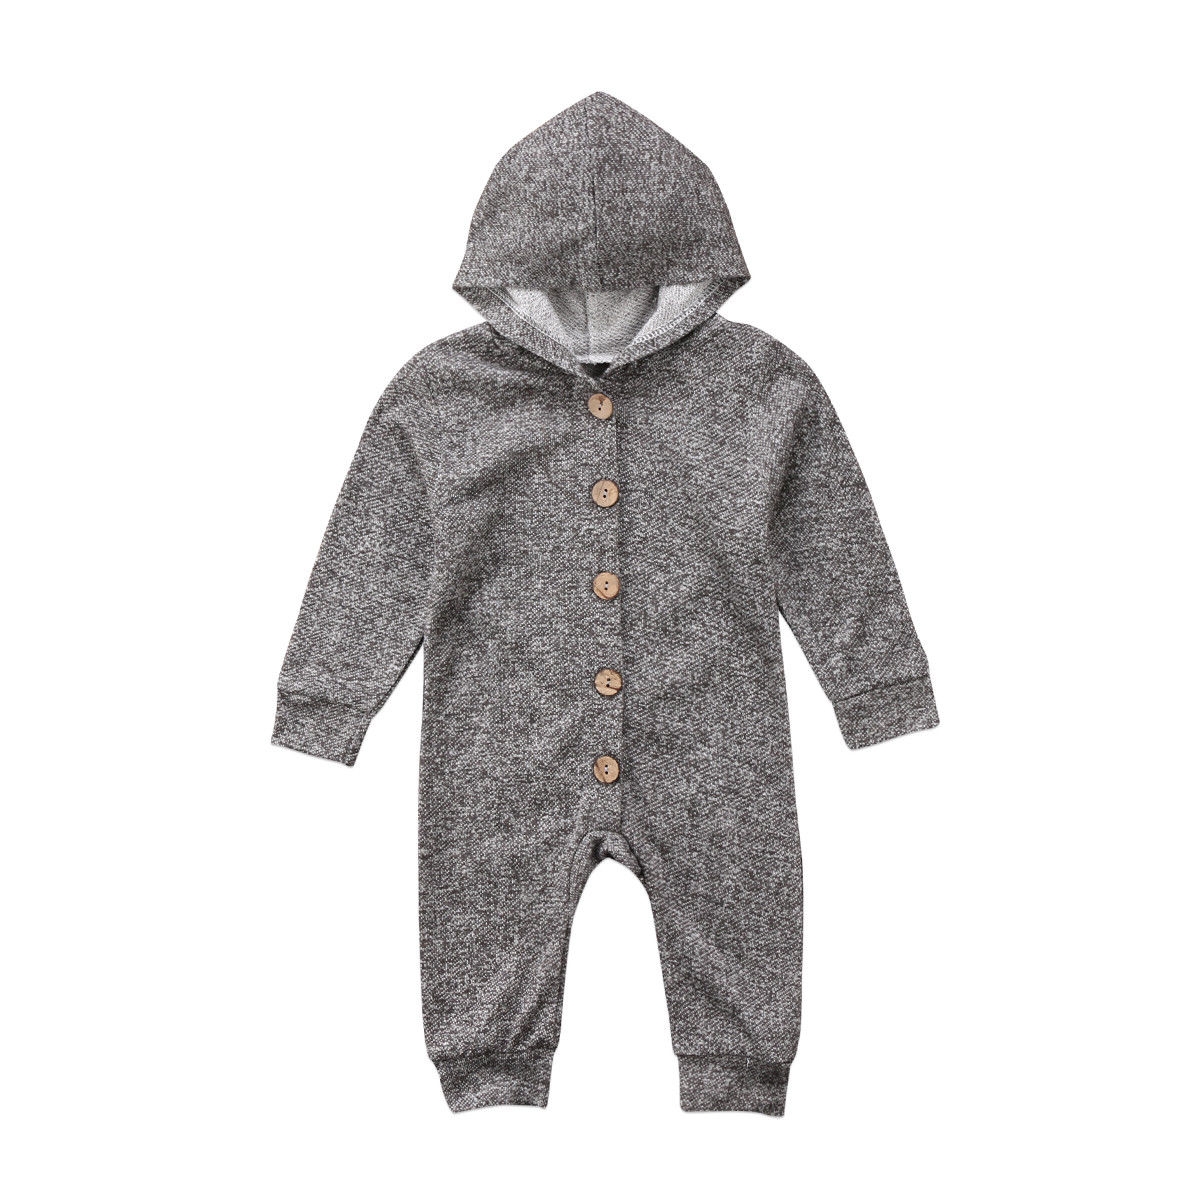 Pudcoco Toddler Baby Boys Girls Onepiece Long Sleeve Hooded Romper Outfits 0-24 Months Helen115